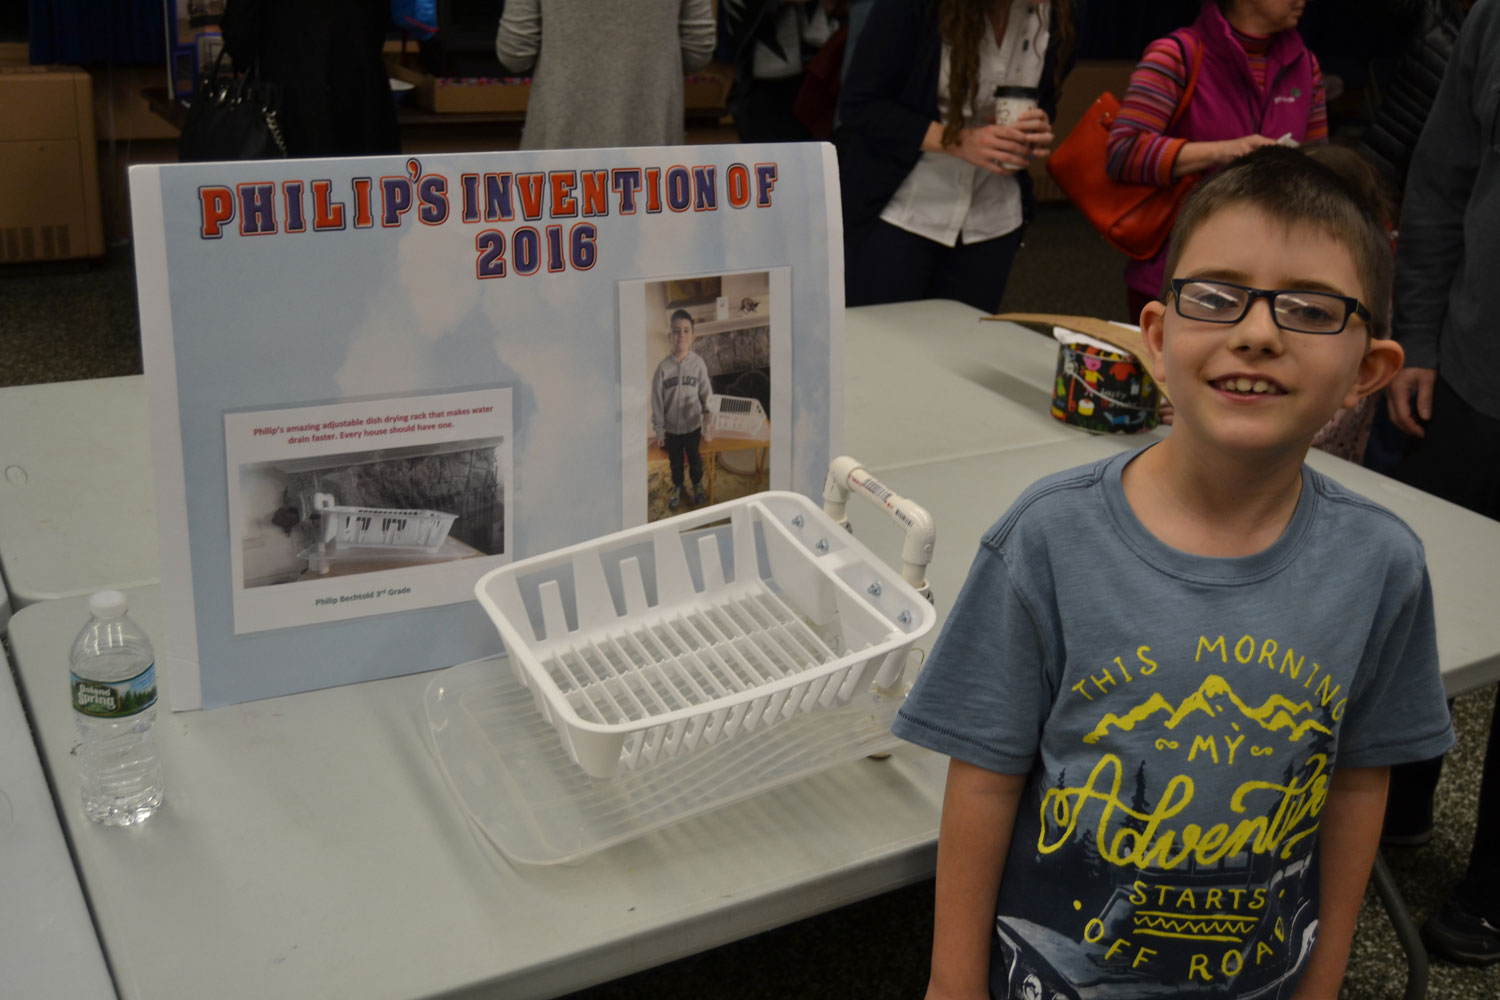 10 Cute Good Invention Ideas For School invention convention full of fresh ideas from young minds tbr news 2020